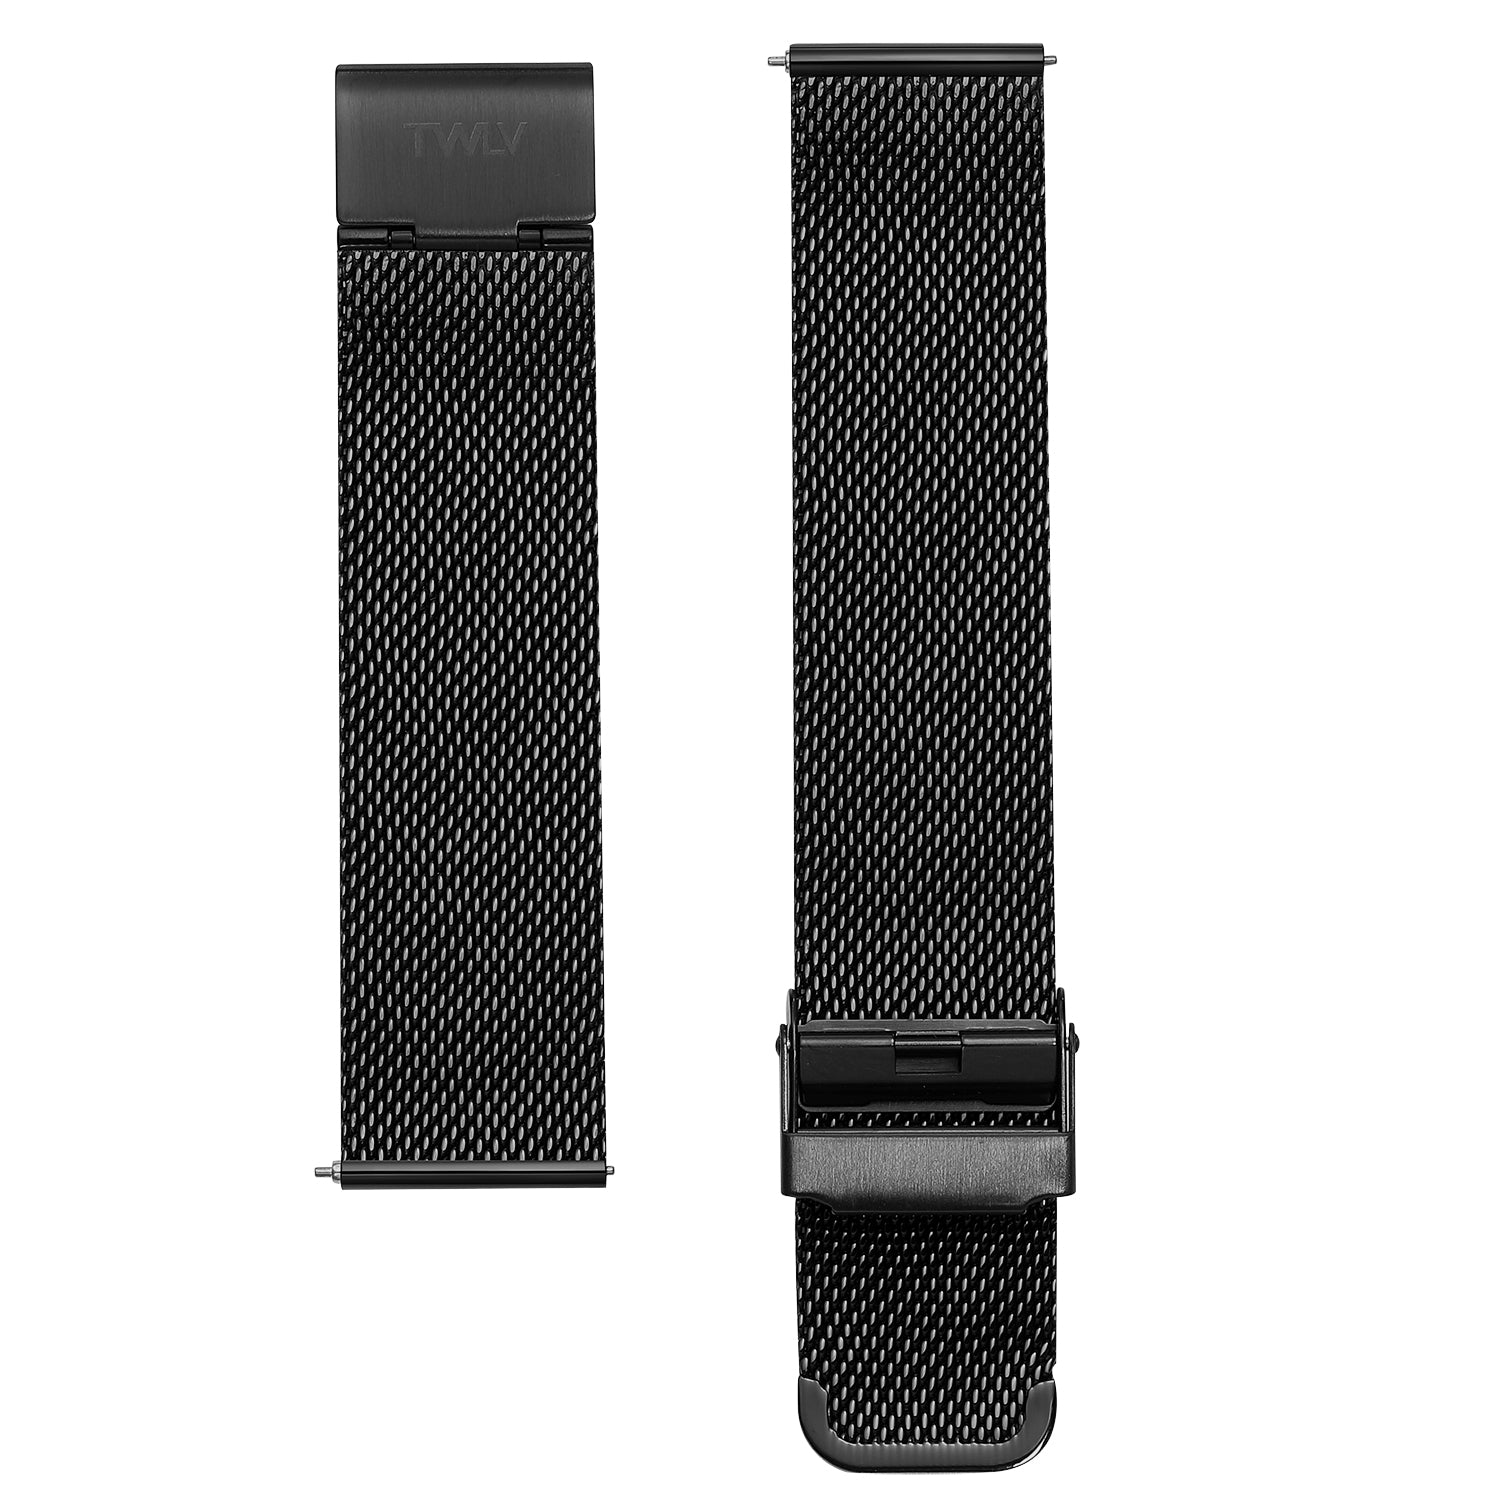 TWLV Gents Black Strap TWS207